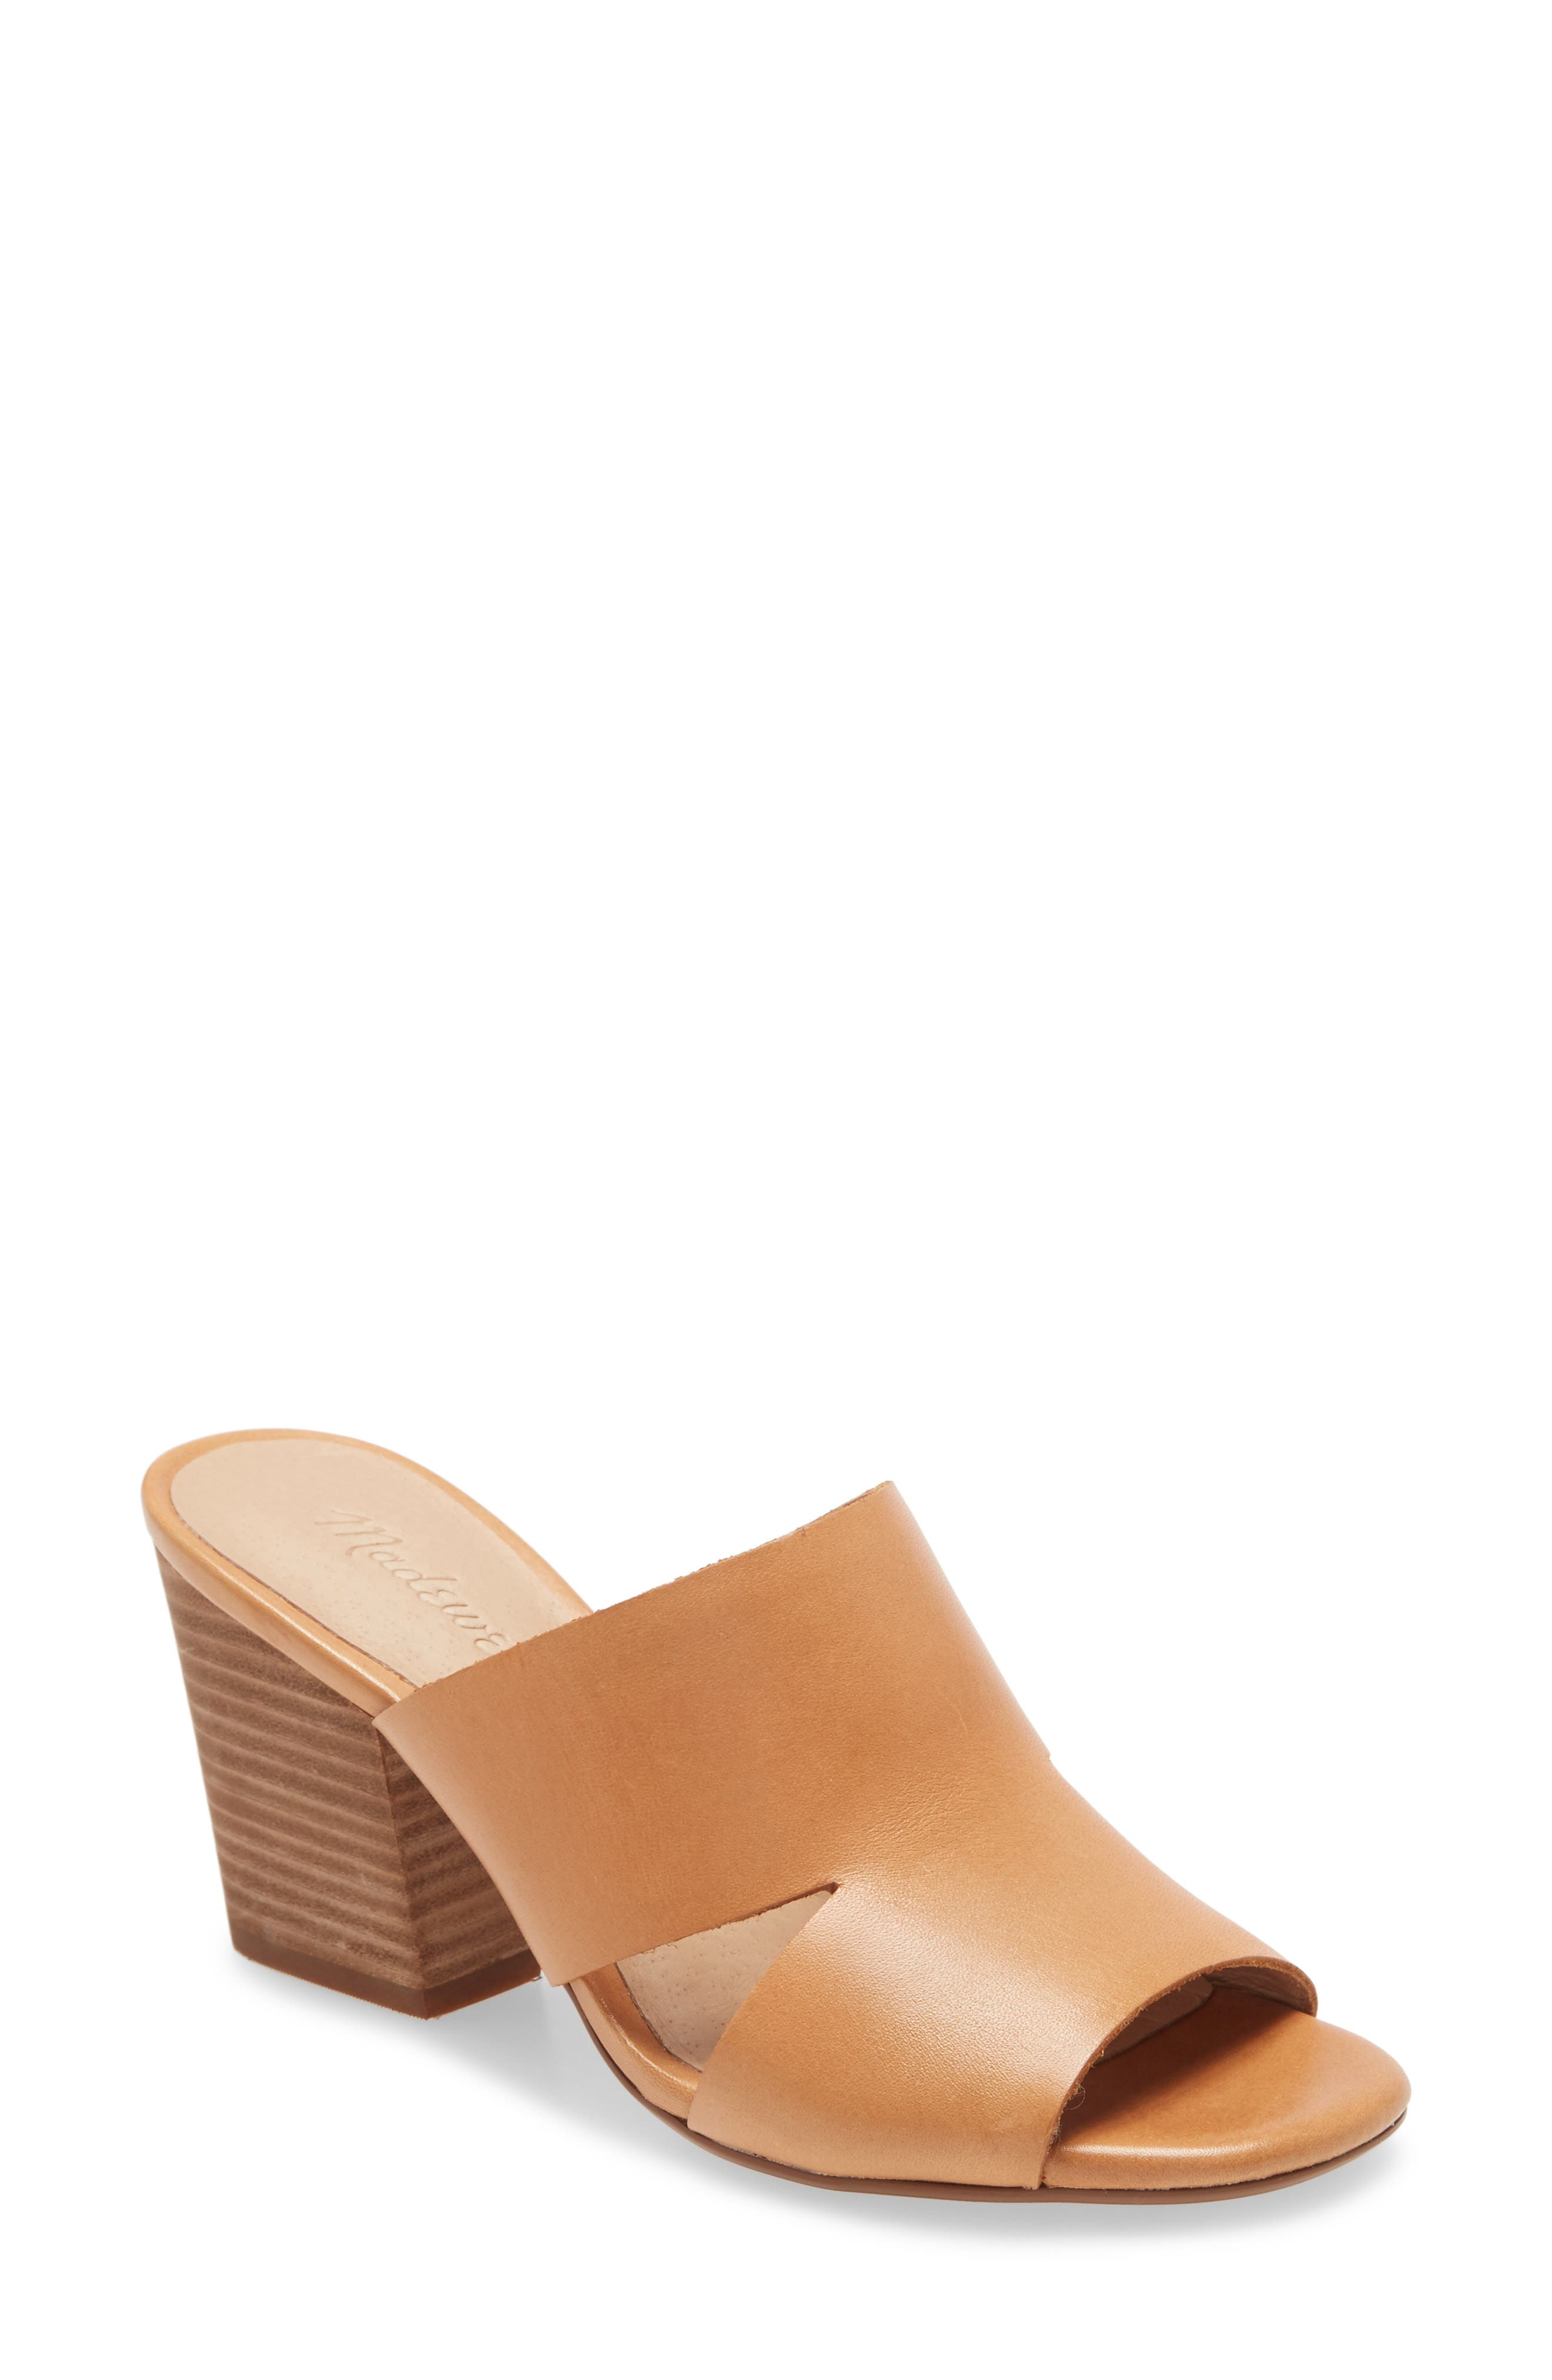 Flirty cutouts and a super-chunky stacked heel give these leather mules a sleek \\\'90s vibe. Dressed up or down, they\\\'re the ones you\\\'ll wear every day. And, cushiness alert: Madewell\\\'s MWL Cloudlift Lite padding feels like walking on a-well, you know. Style Name: Madewell The Tessa Mule (Women). Style Number: 5986468. Available in stores.